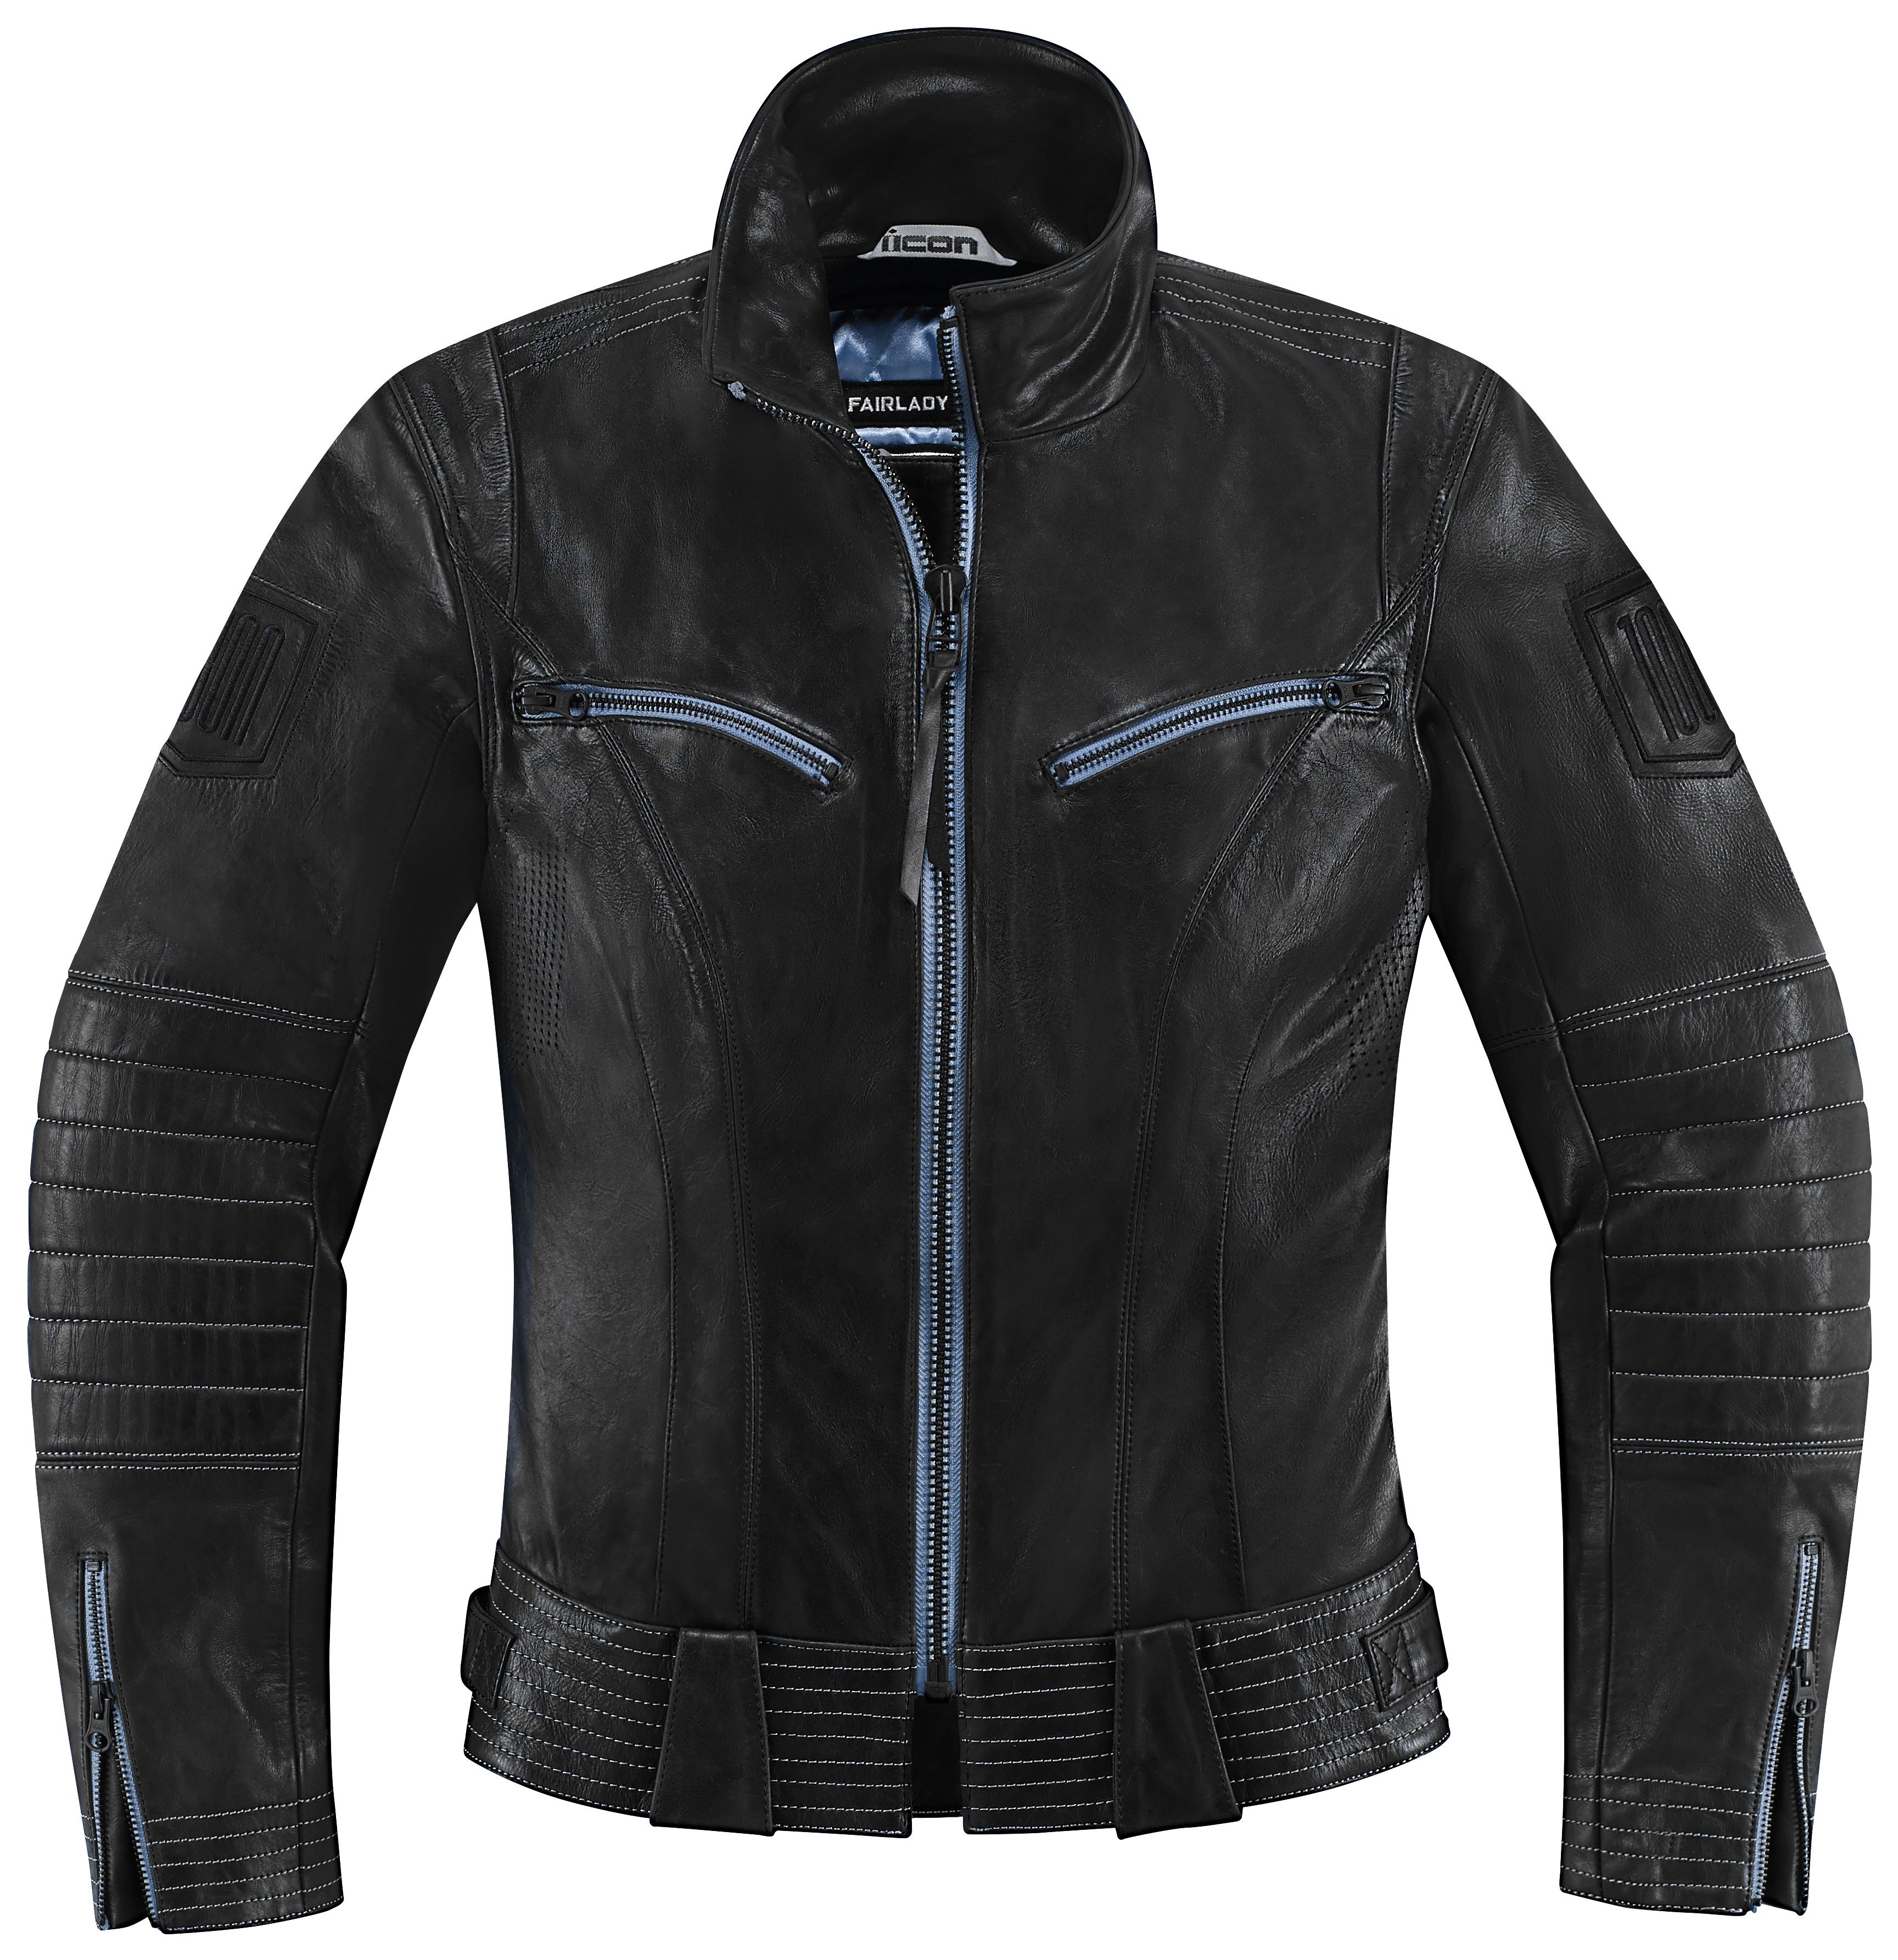 Shop Icon Motorcycle Jackets From Motorcycle House. Your one stop shop for top motorcycle gear and luggage accessories. Fast Shipping. Lowest prices Guaranteed!